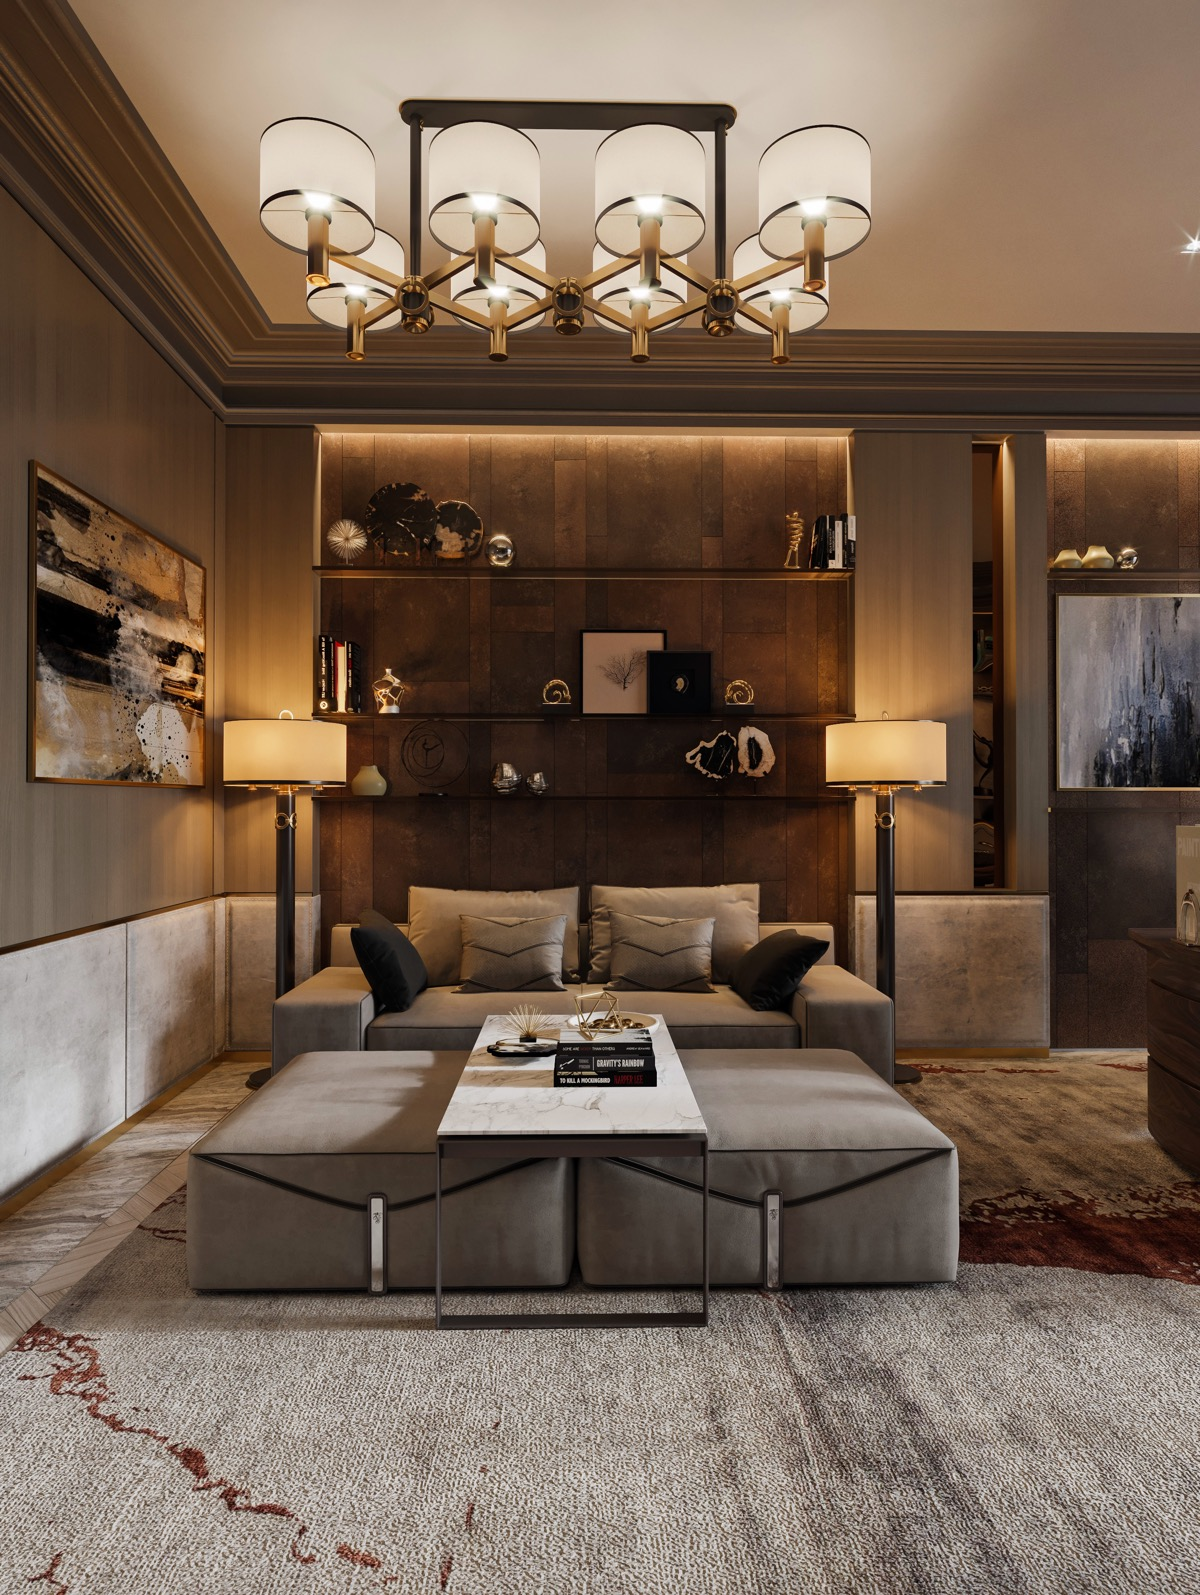 Beautiful Traditional Living Rooms With Grey Couch And White Marble Coffee Table - 53 Cool Living Rooms With Irresistible Modern Appeal